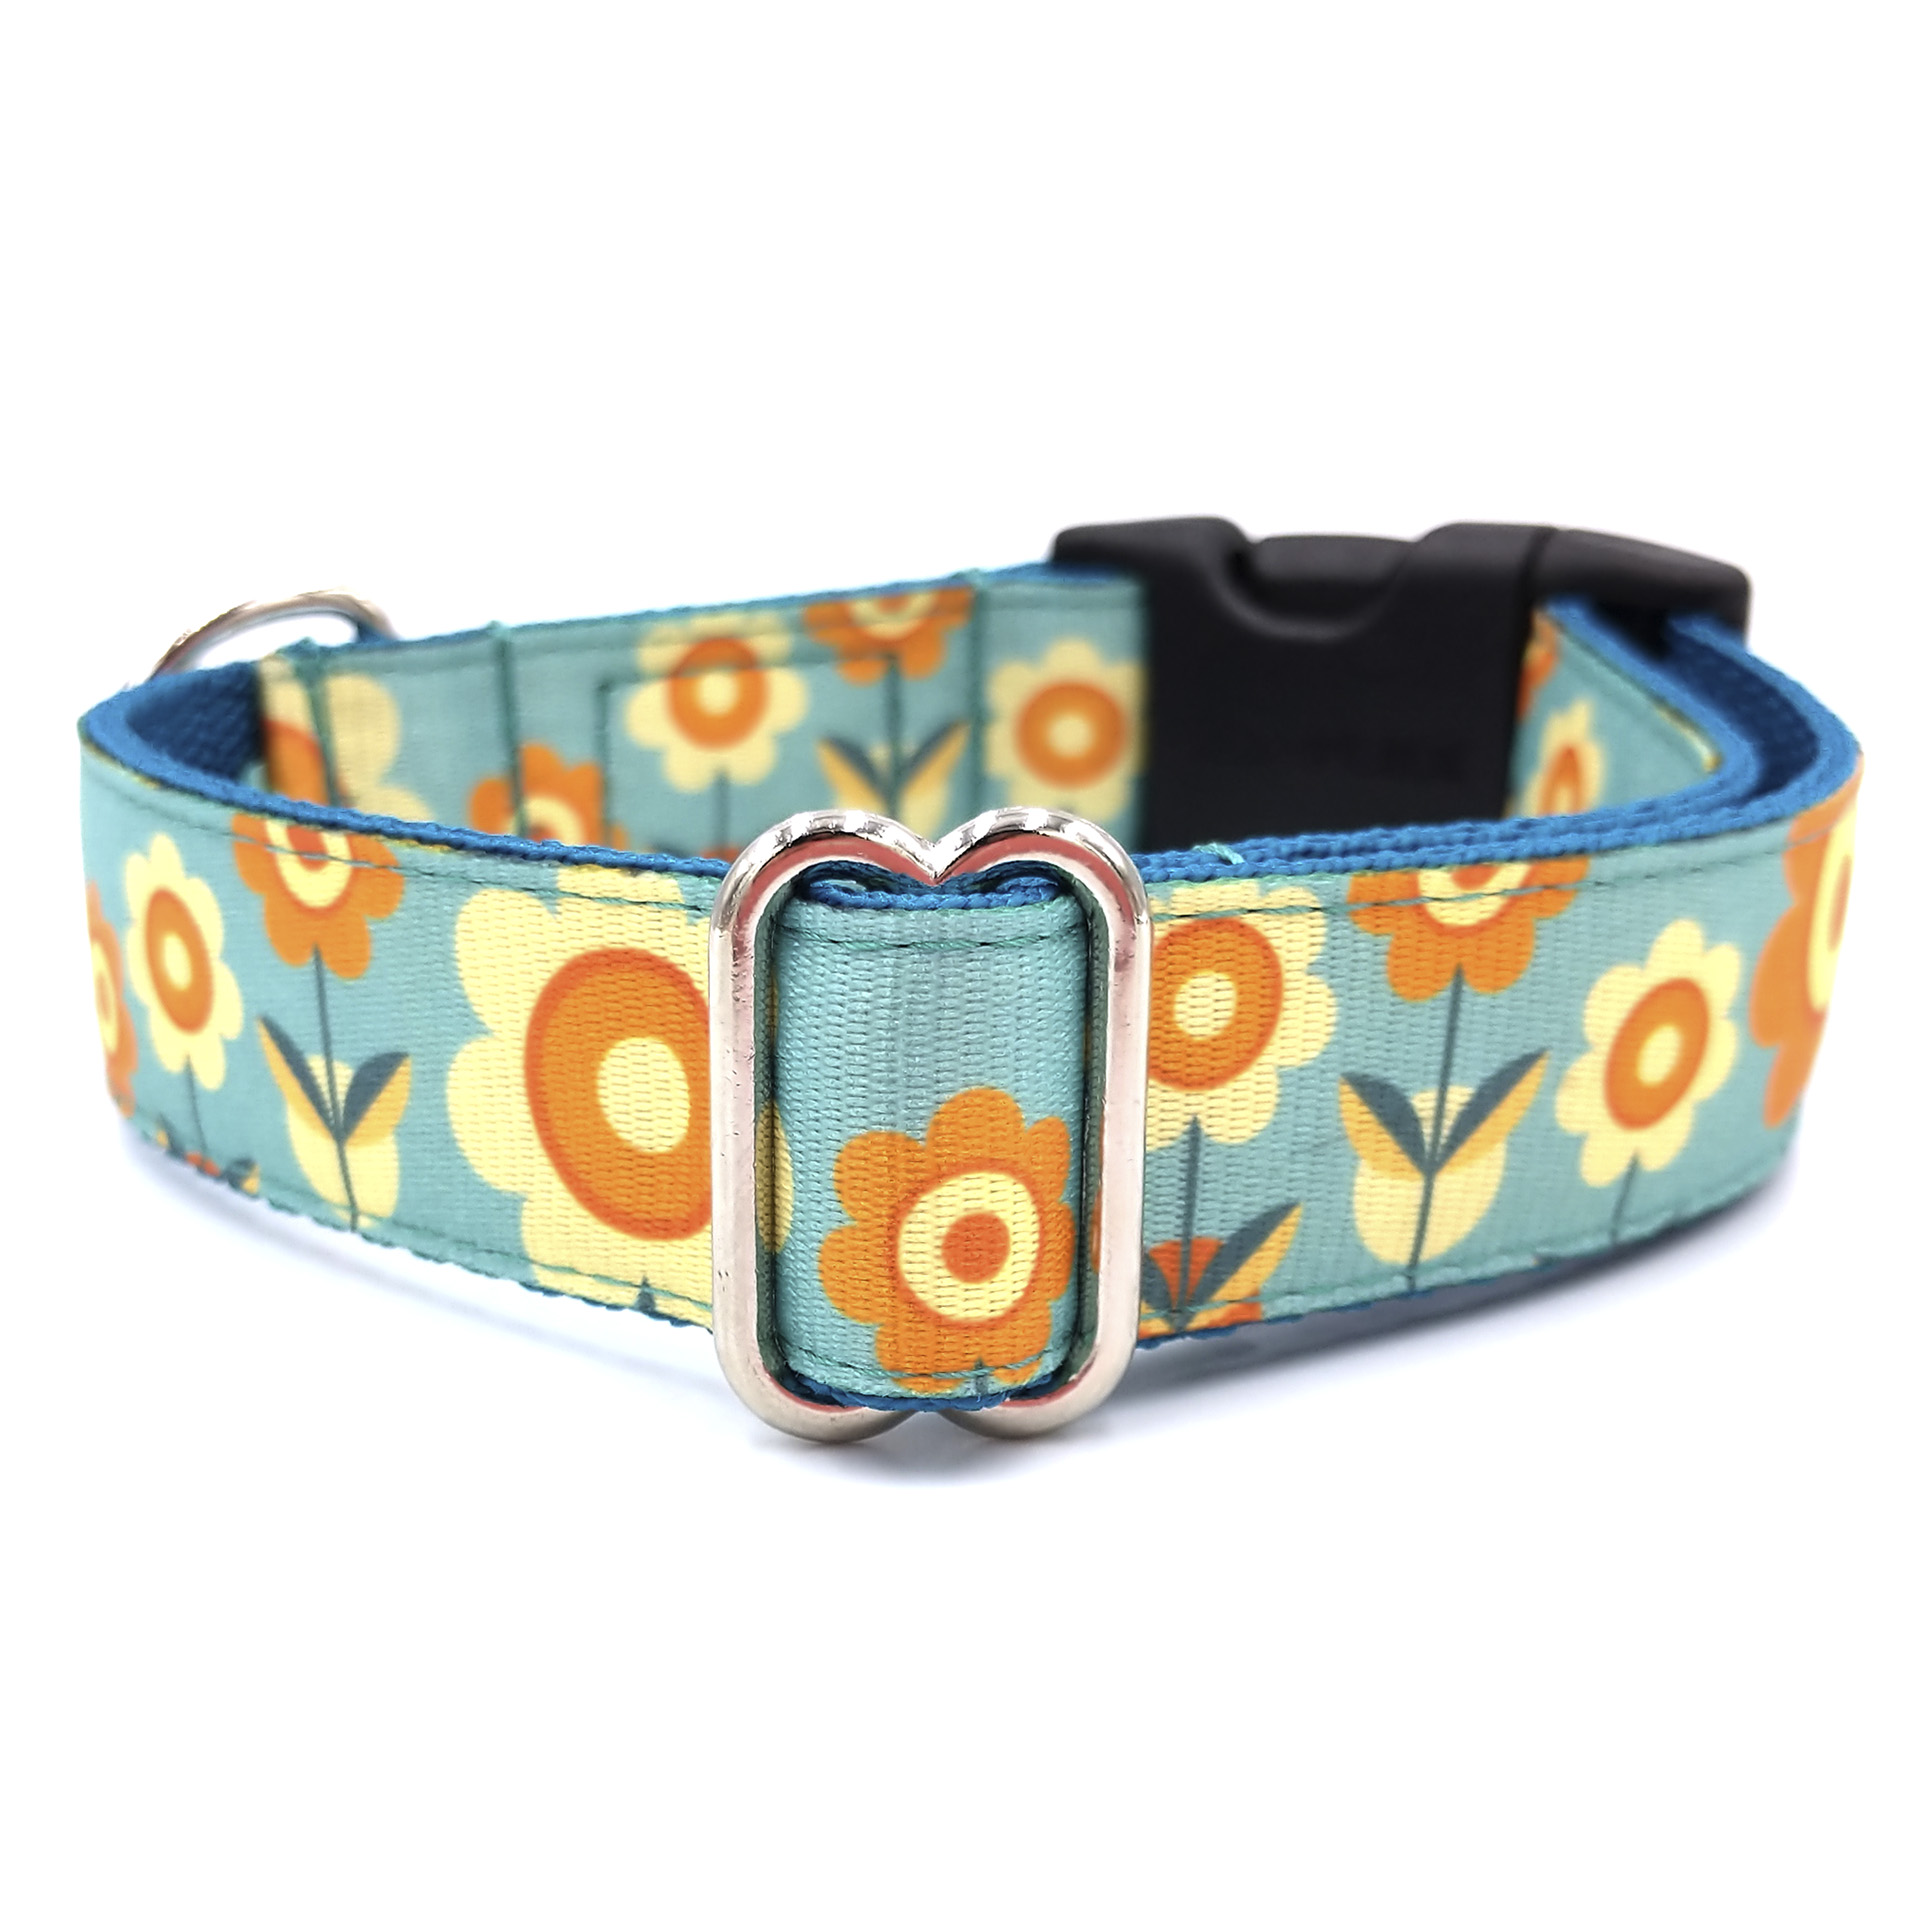 Fabulous dog collar